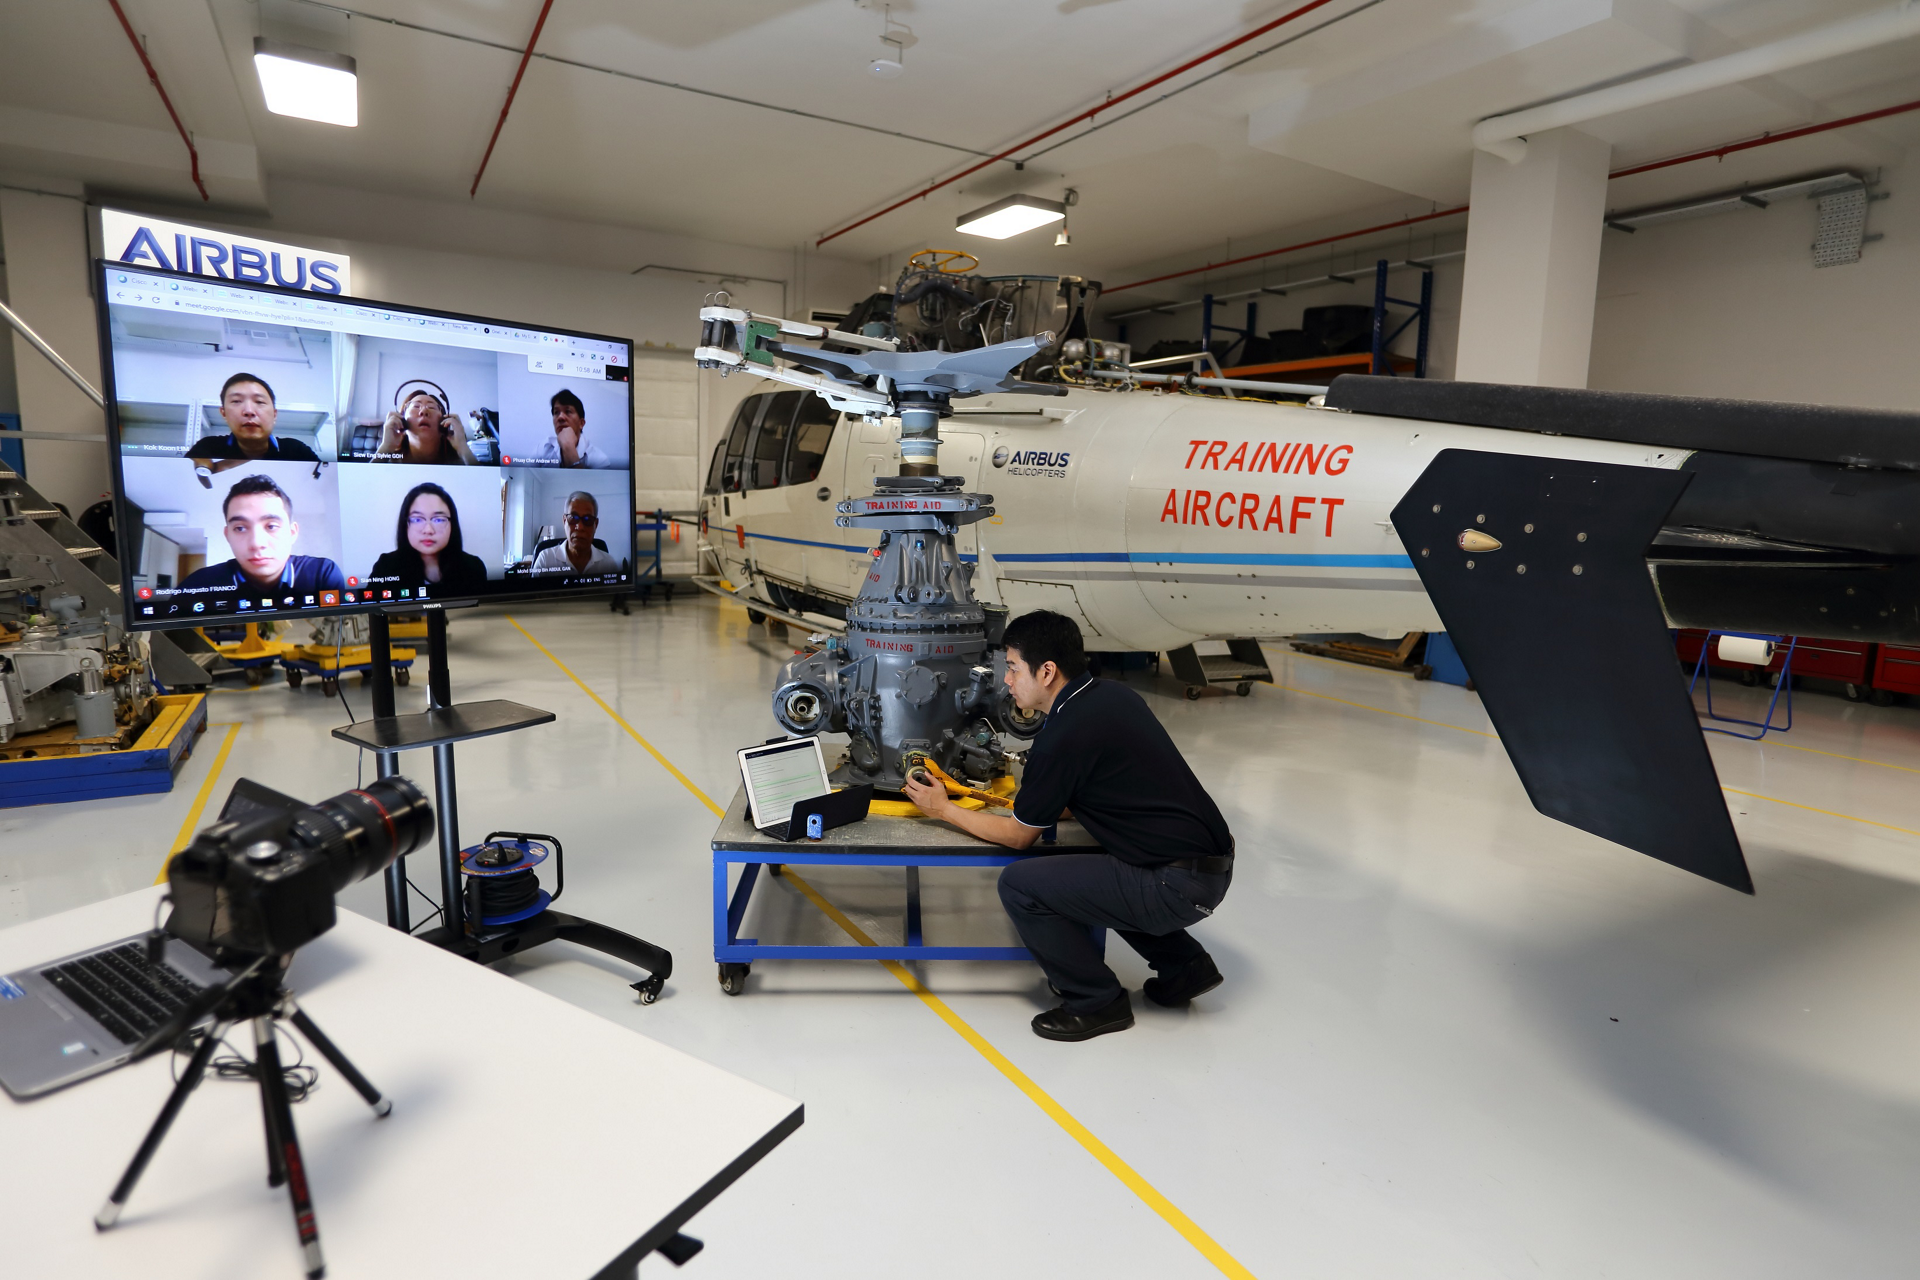 Airbus Helicopters' distance learning comes two formats: virtual classroom sessions, which are led by an instructor, and e-learning modules for independent study.